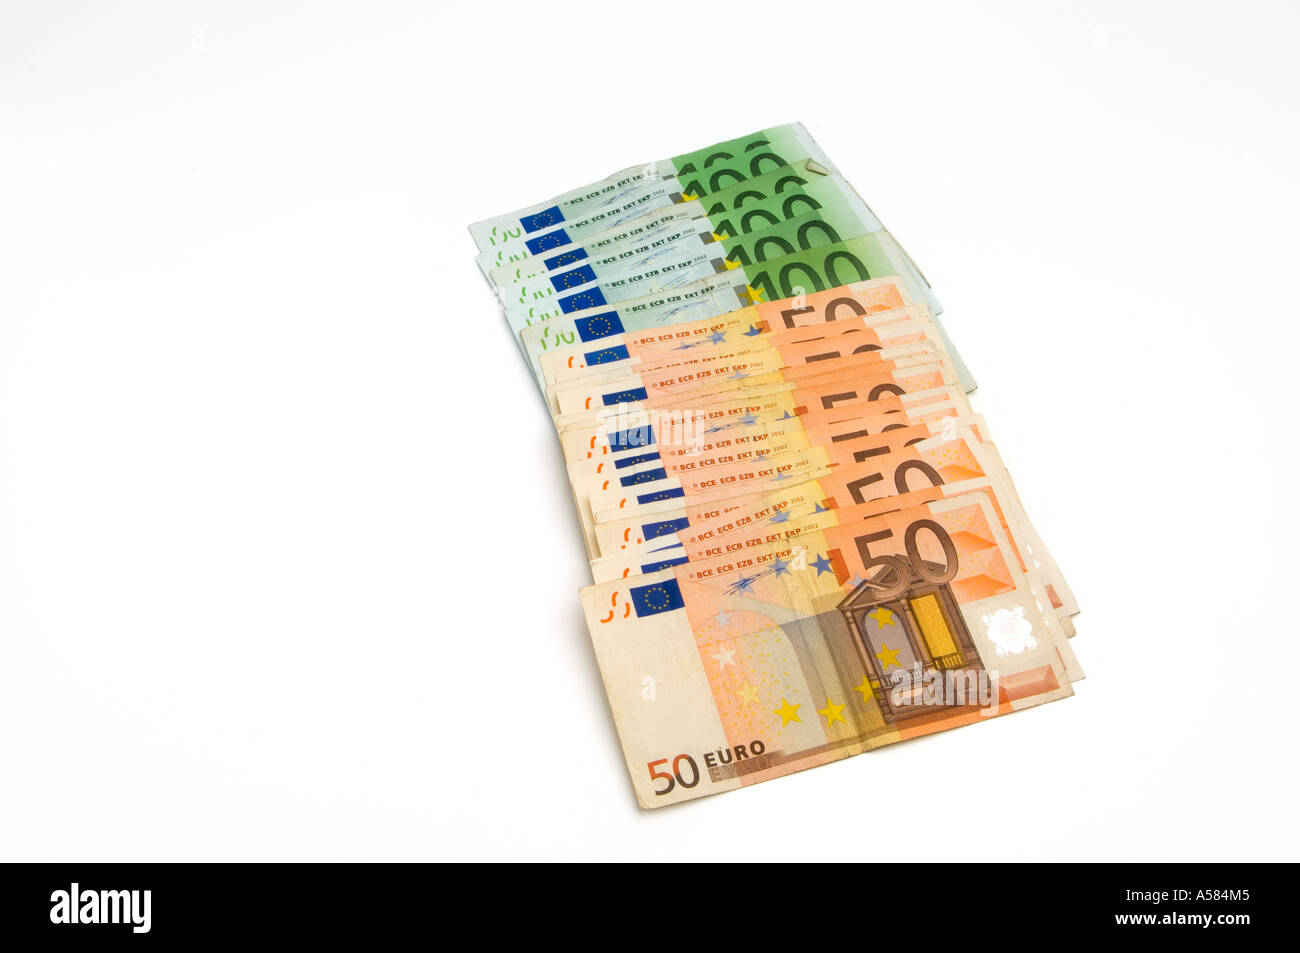 1500 in euros